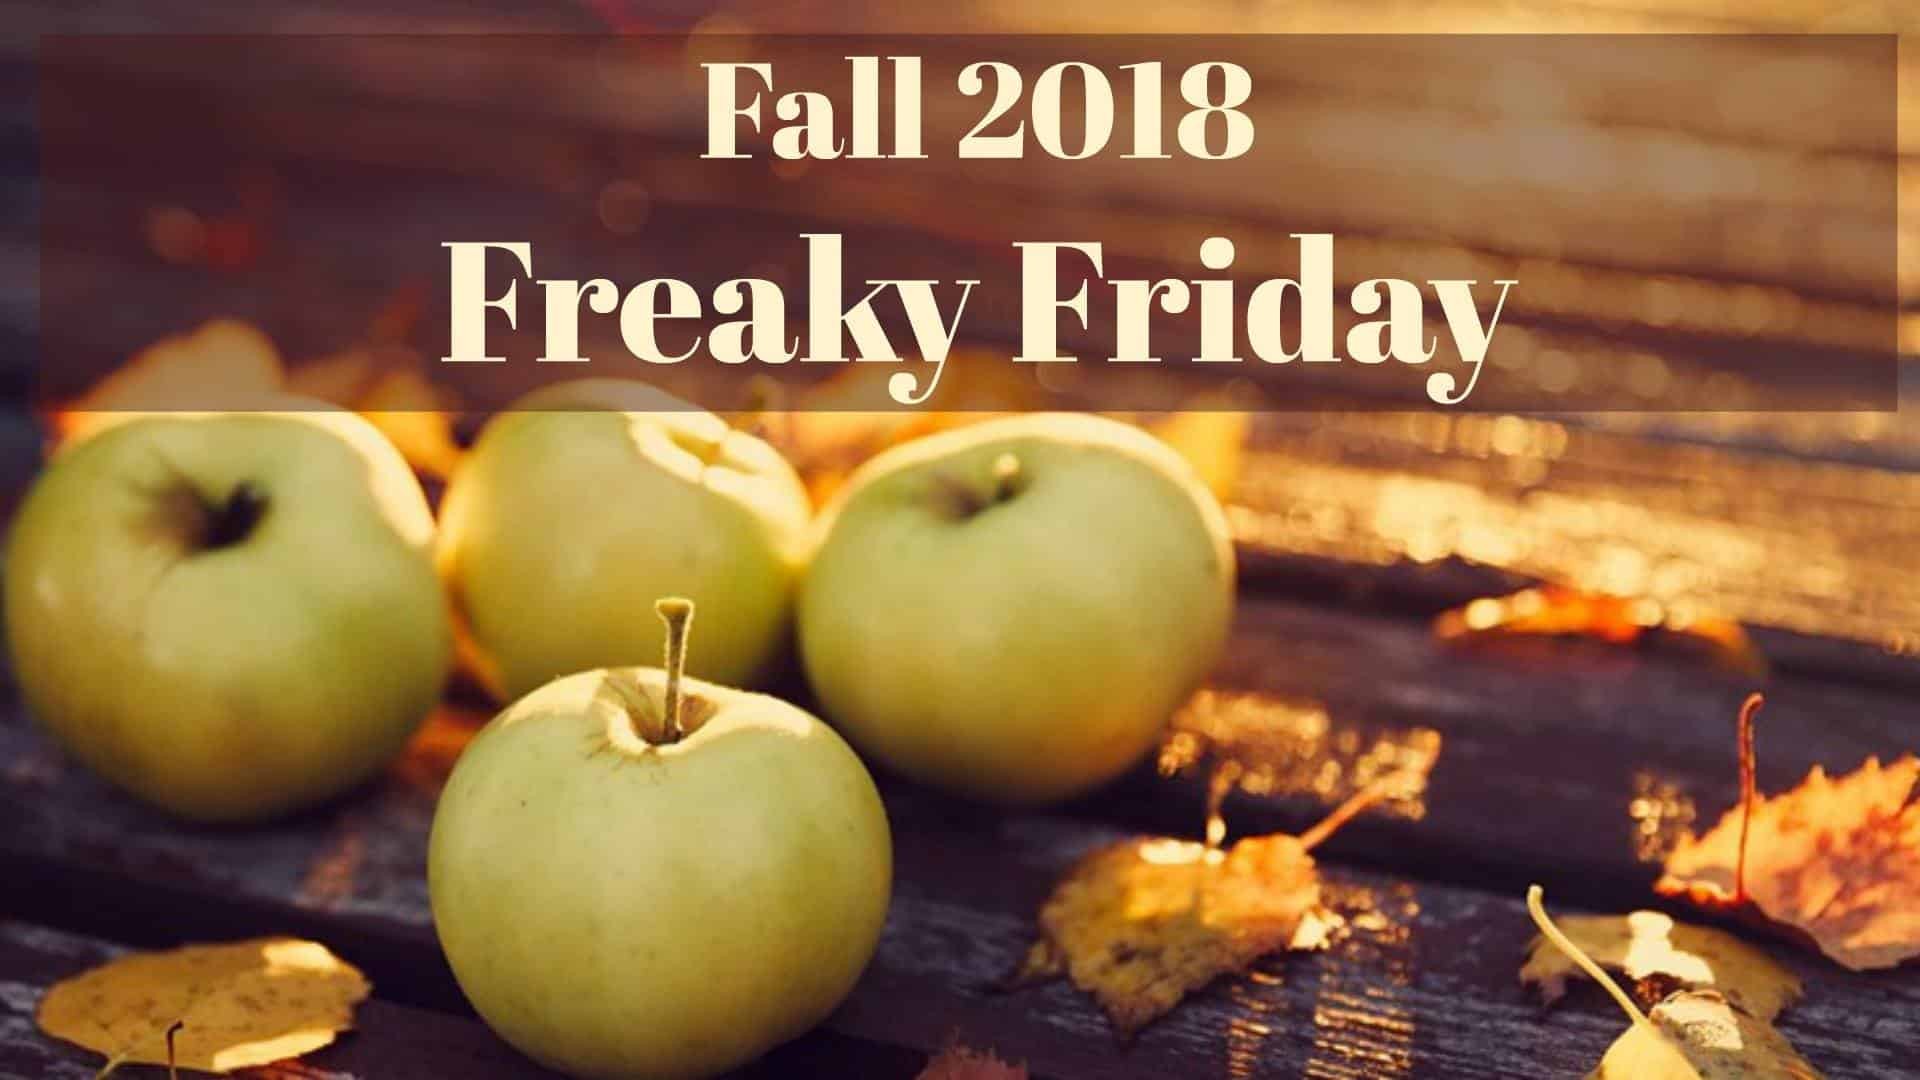 Freaky Friday Fall 2018